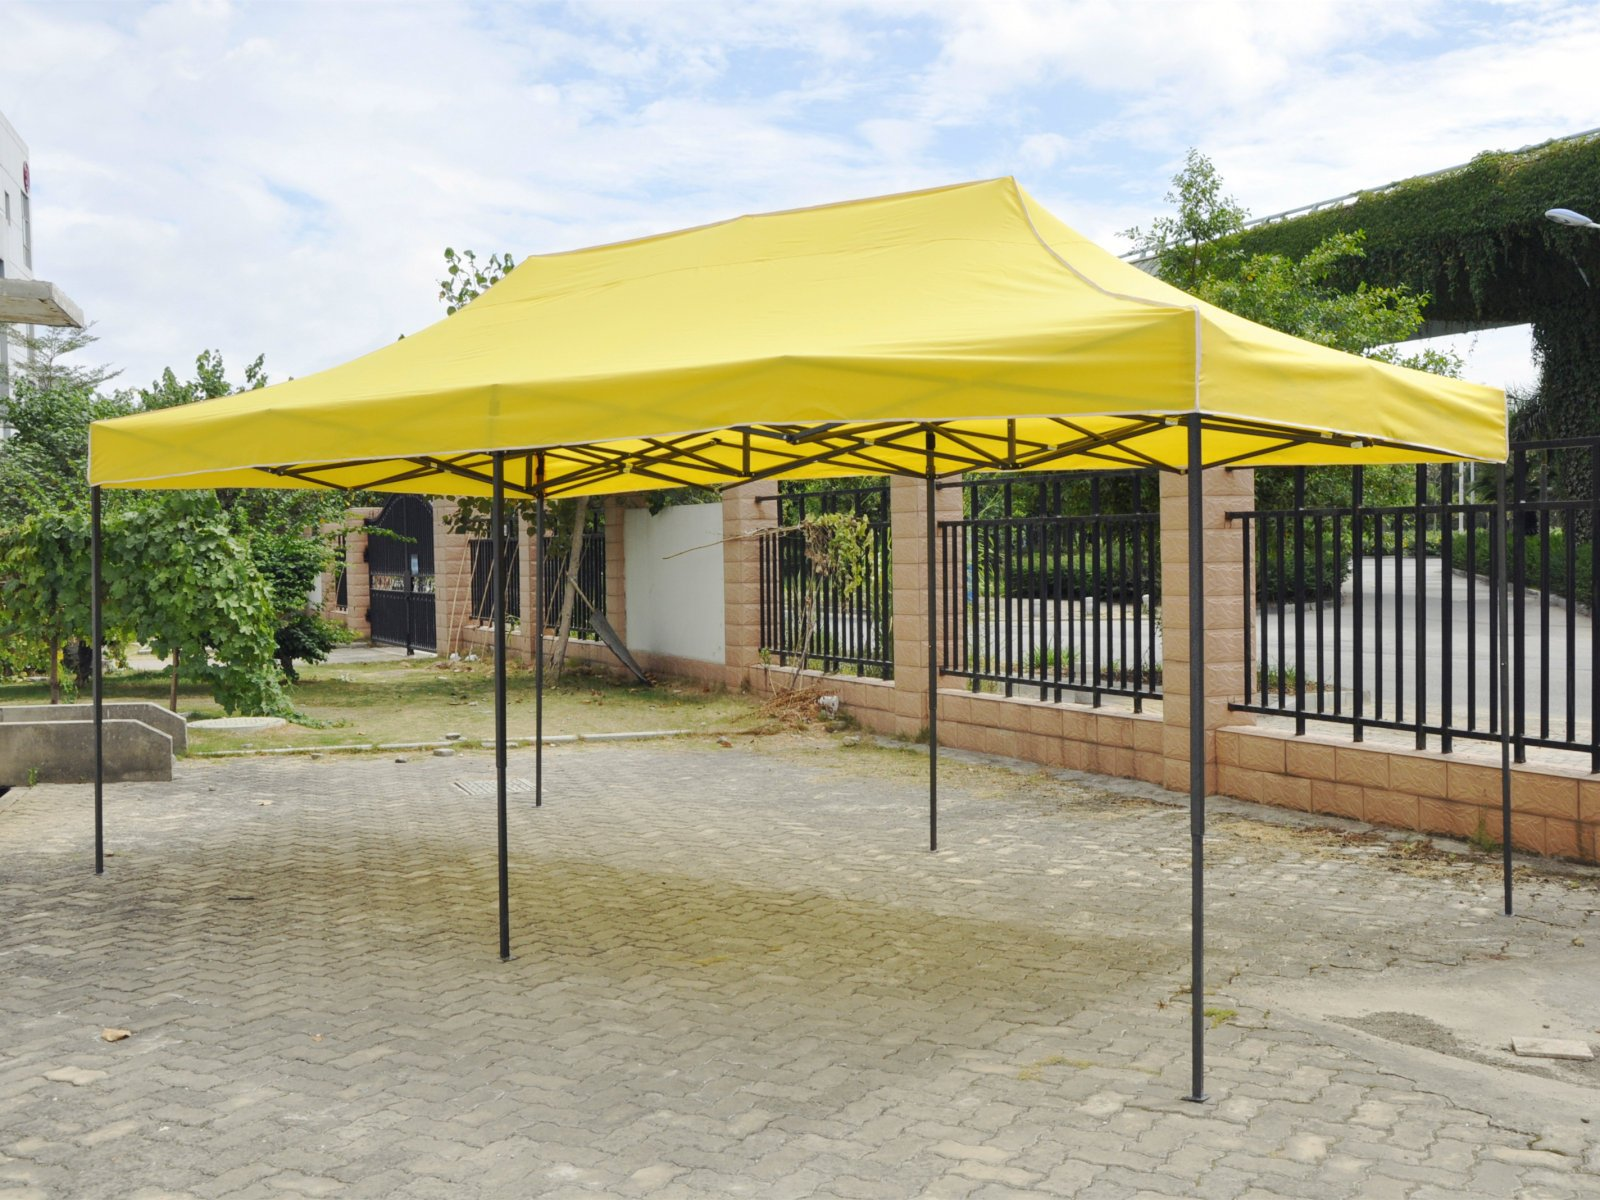 American Phoenix 10x20 Multi Color and Size Portable Event Canopy Tent, Canopy Tent, Party Tent Gazebo Canopy Commercial Fair Shelter Car Shelter Wedding Party Easy Pop Up (Yellow, 10x20)